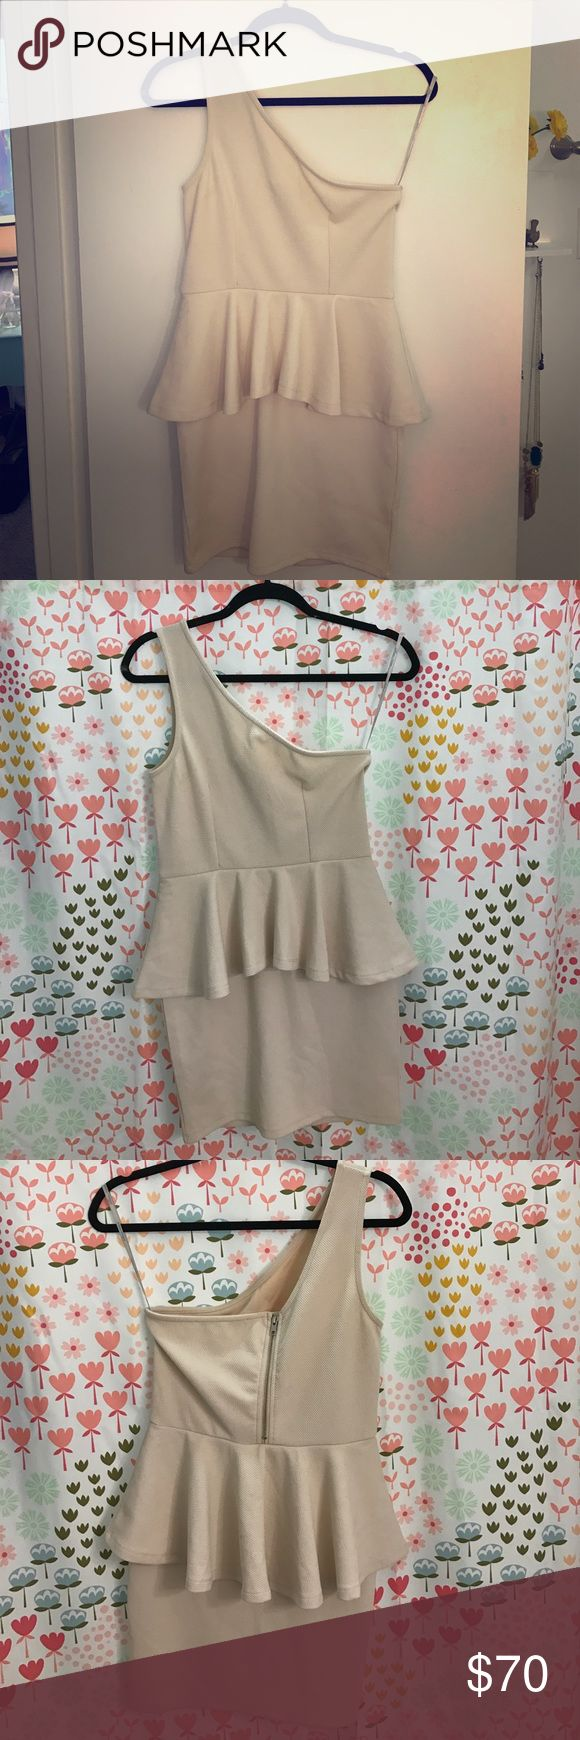 Lovers + Friends One Shoulder Cream Peplum Dress Great going out dress!! 👠👠 Polyester and spandex. Has stretch. One little spot on the back-- barely noticeable Lovers + Friends Dresses Mini